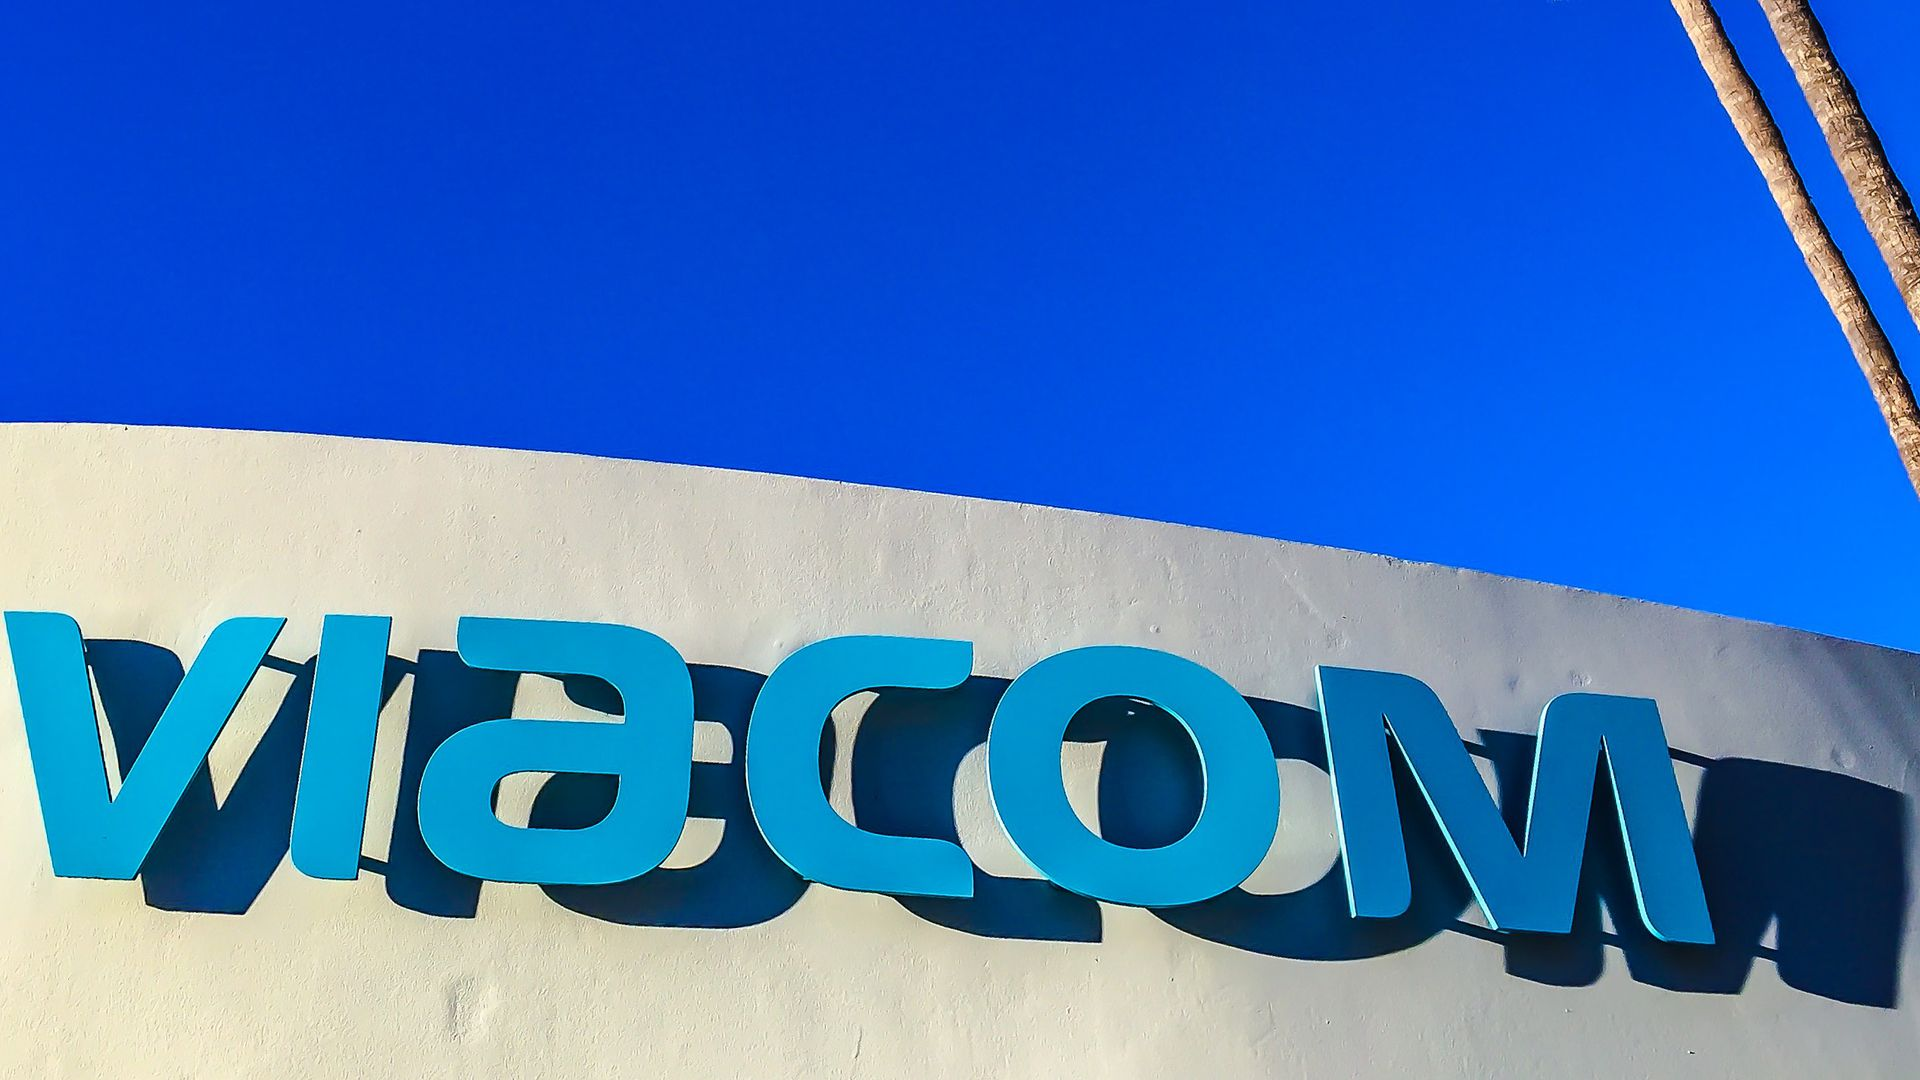 Techmeme: Viacom to acquire Pluto TV, a free, ad-supported